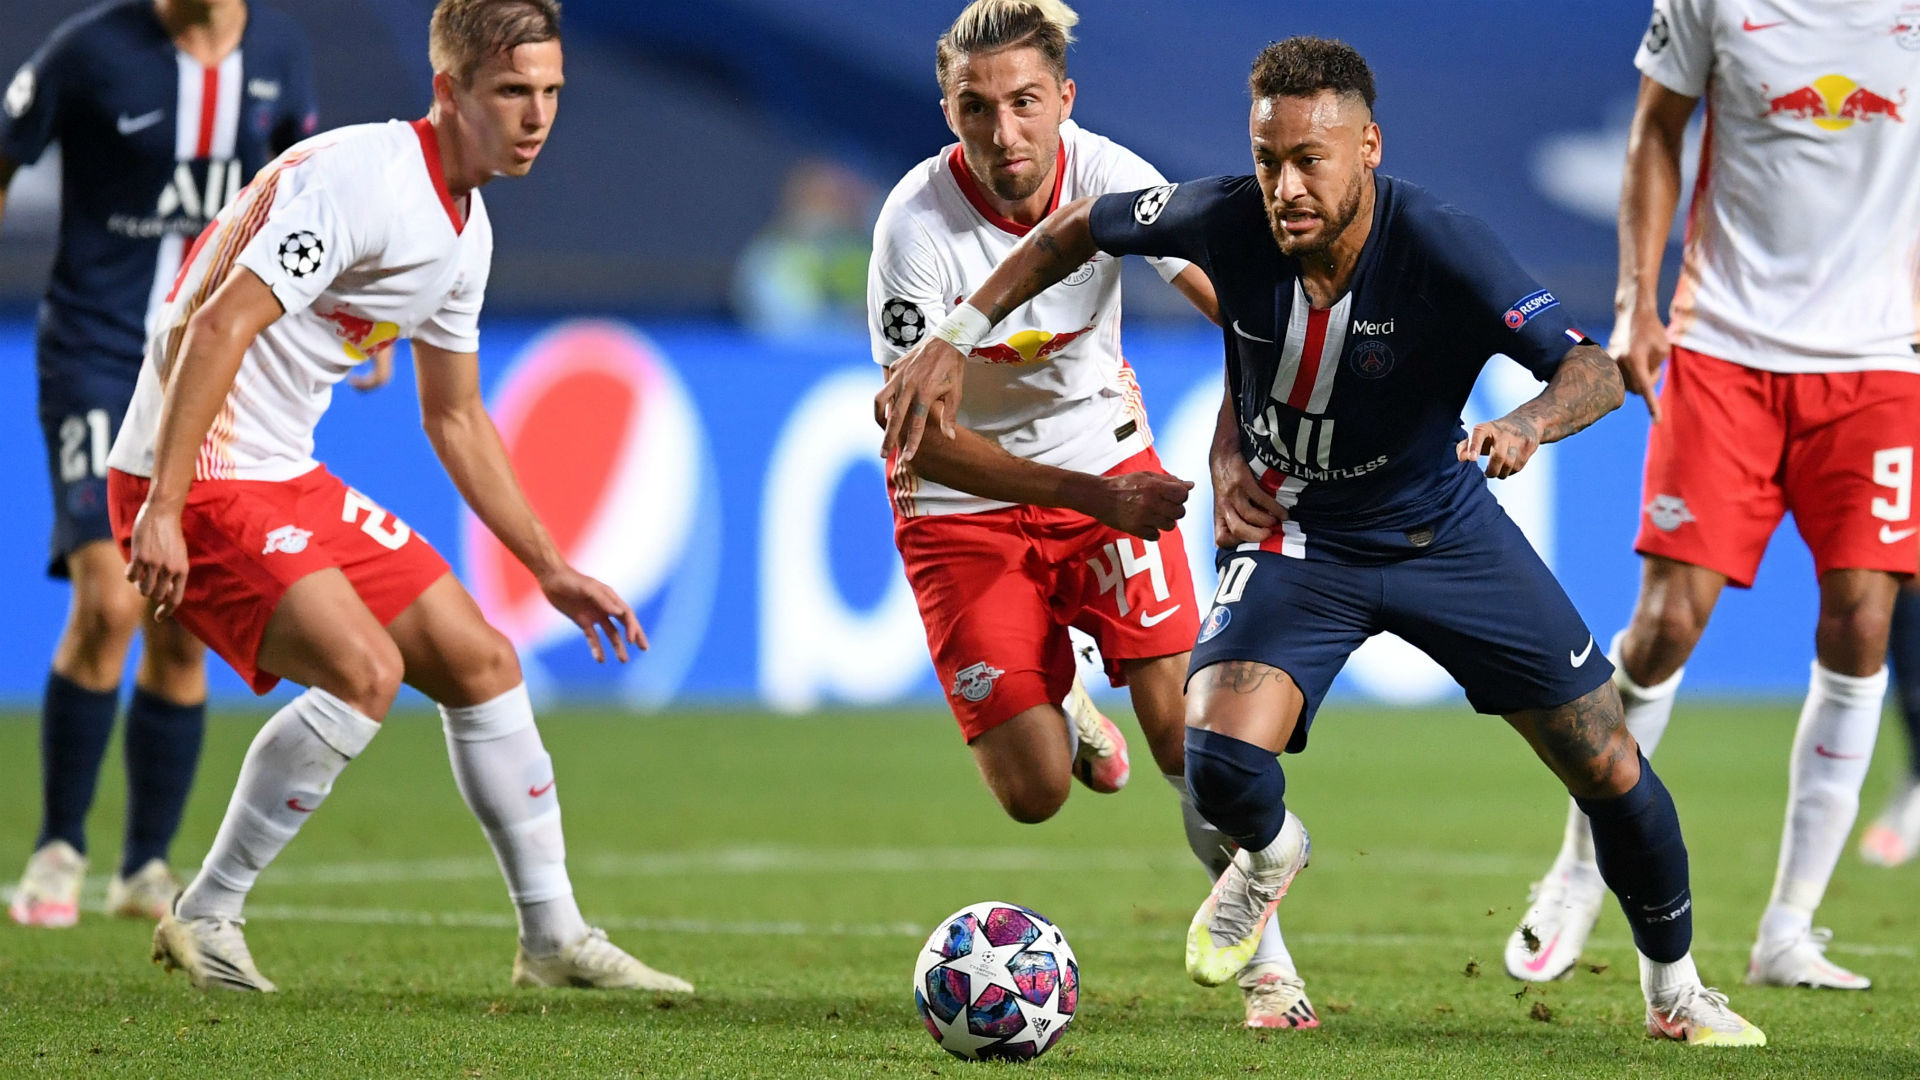 Psg Vs Rb Leipzig Score Results Highlights From 2020 Champions League Semifinal Sporting News